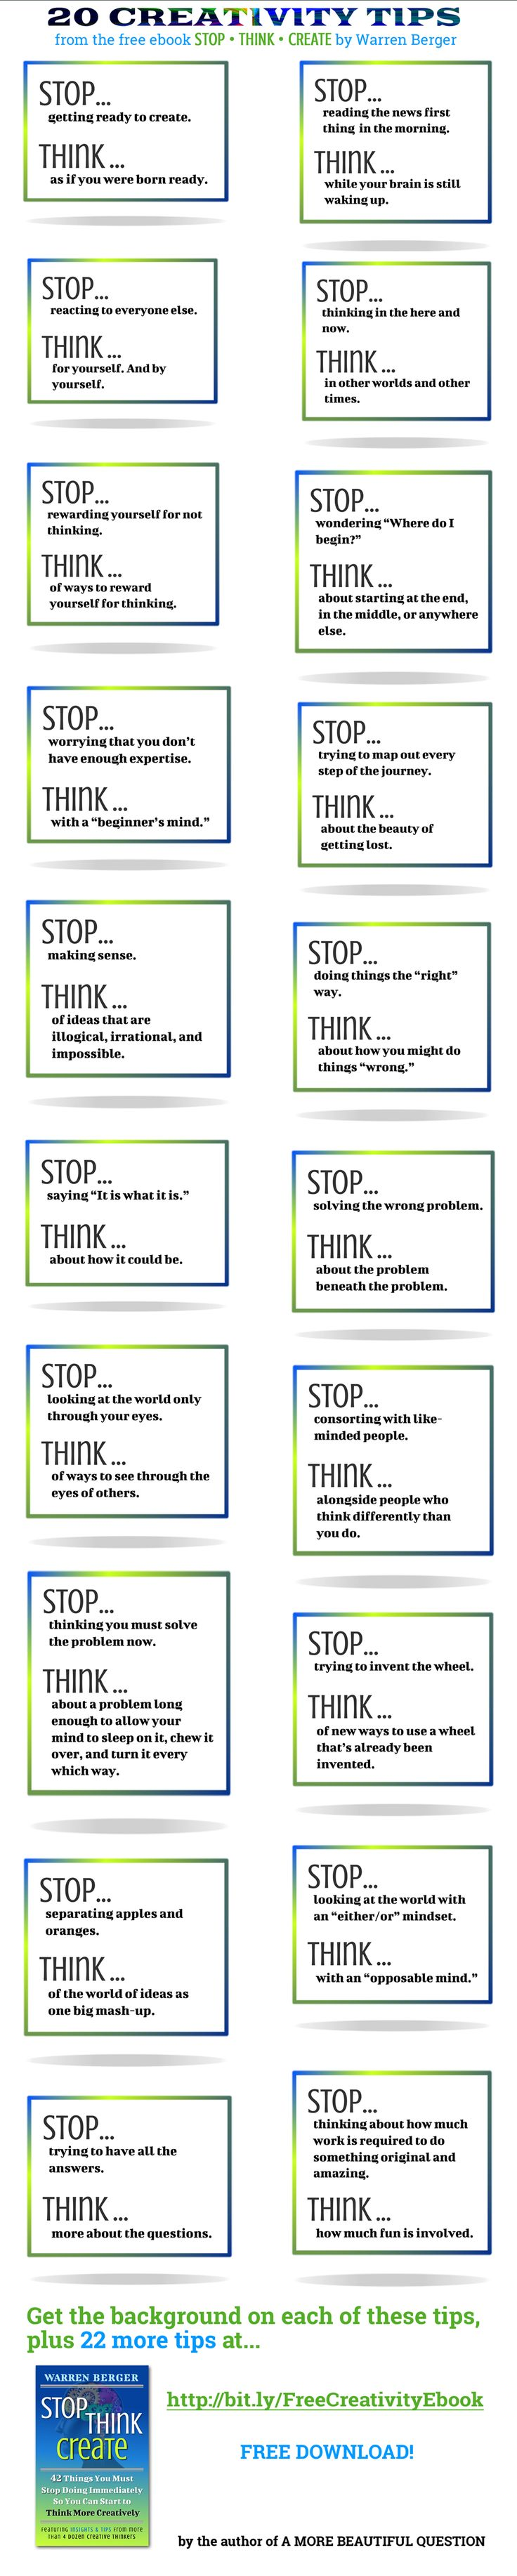 Ready to get #creative in 2015? This #infographic lists 20 of 42 things you must STOP doing immediately. Via Warren Berger & http://amorebeautifulquestion.com/about/free-ebook-stop-think-2/